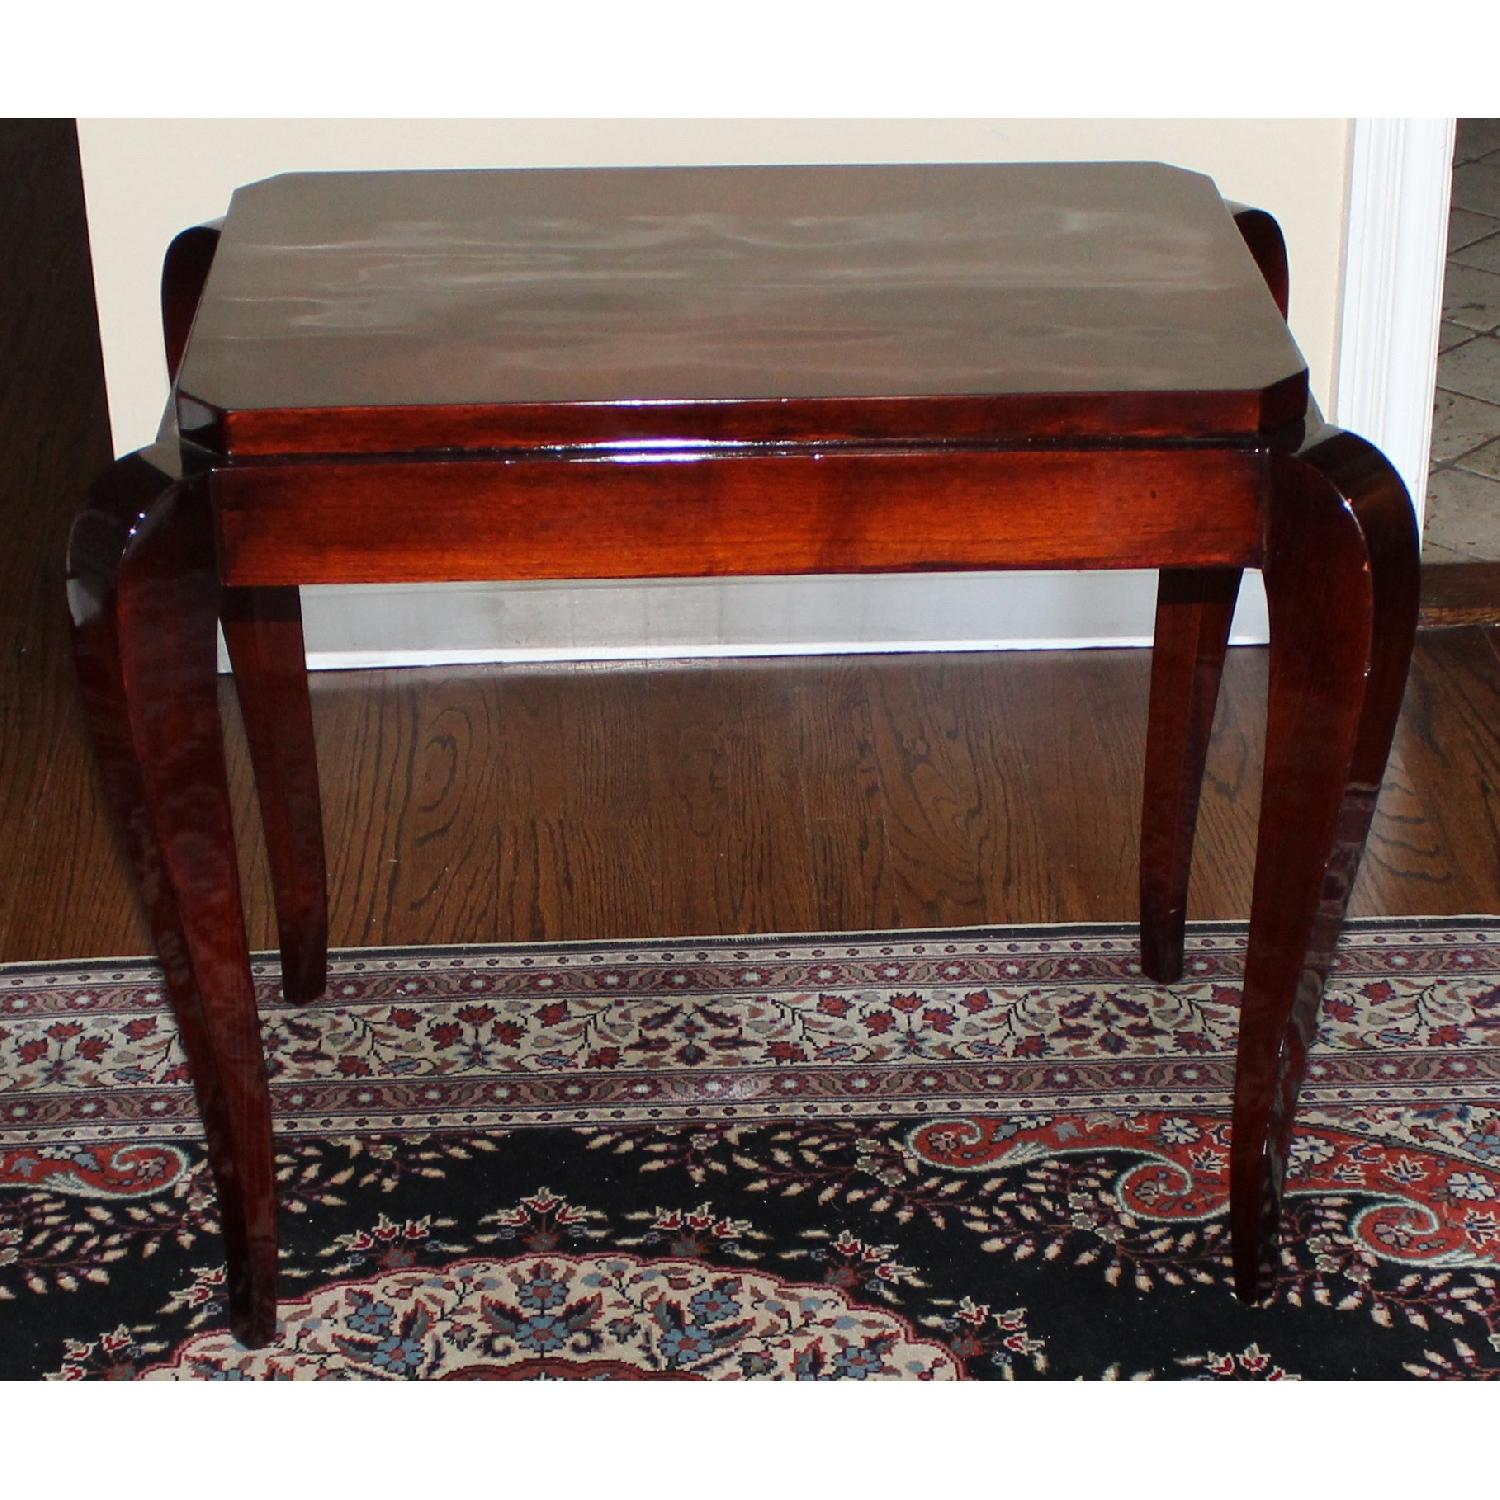 Gracious Art Deco Side Table w/ Tapered Legs - image-1